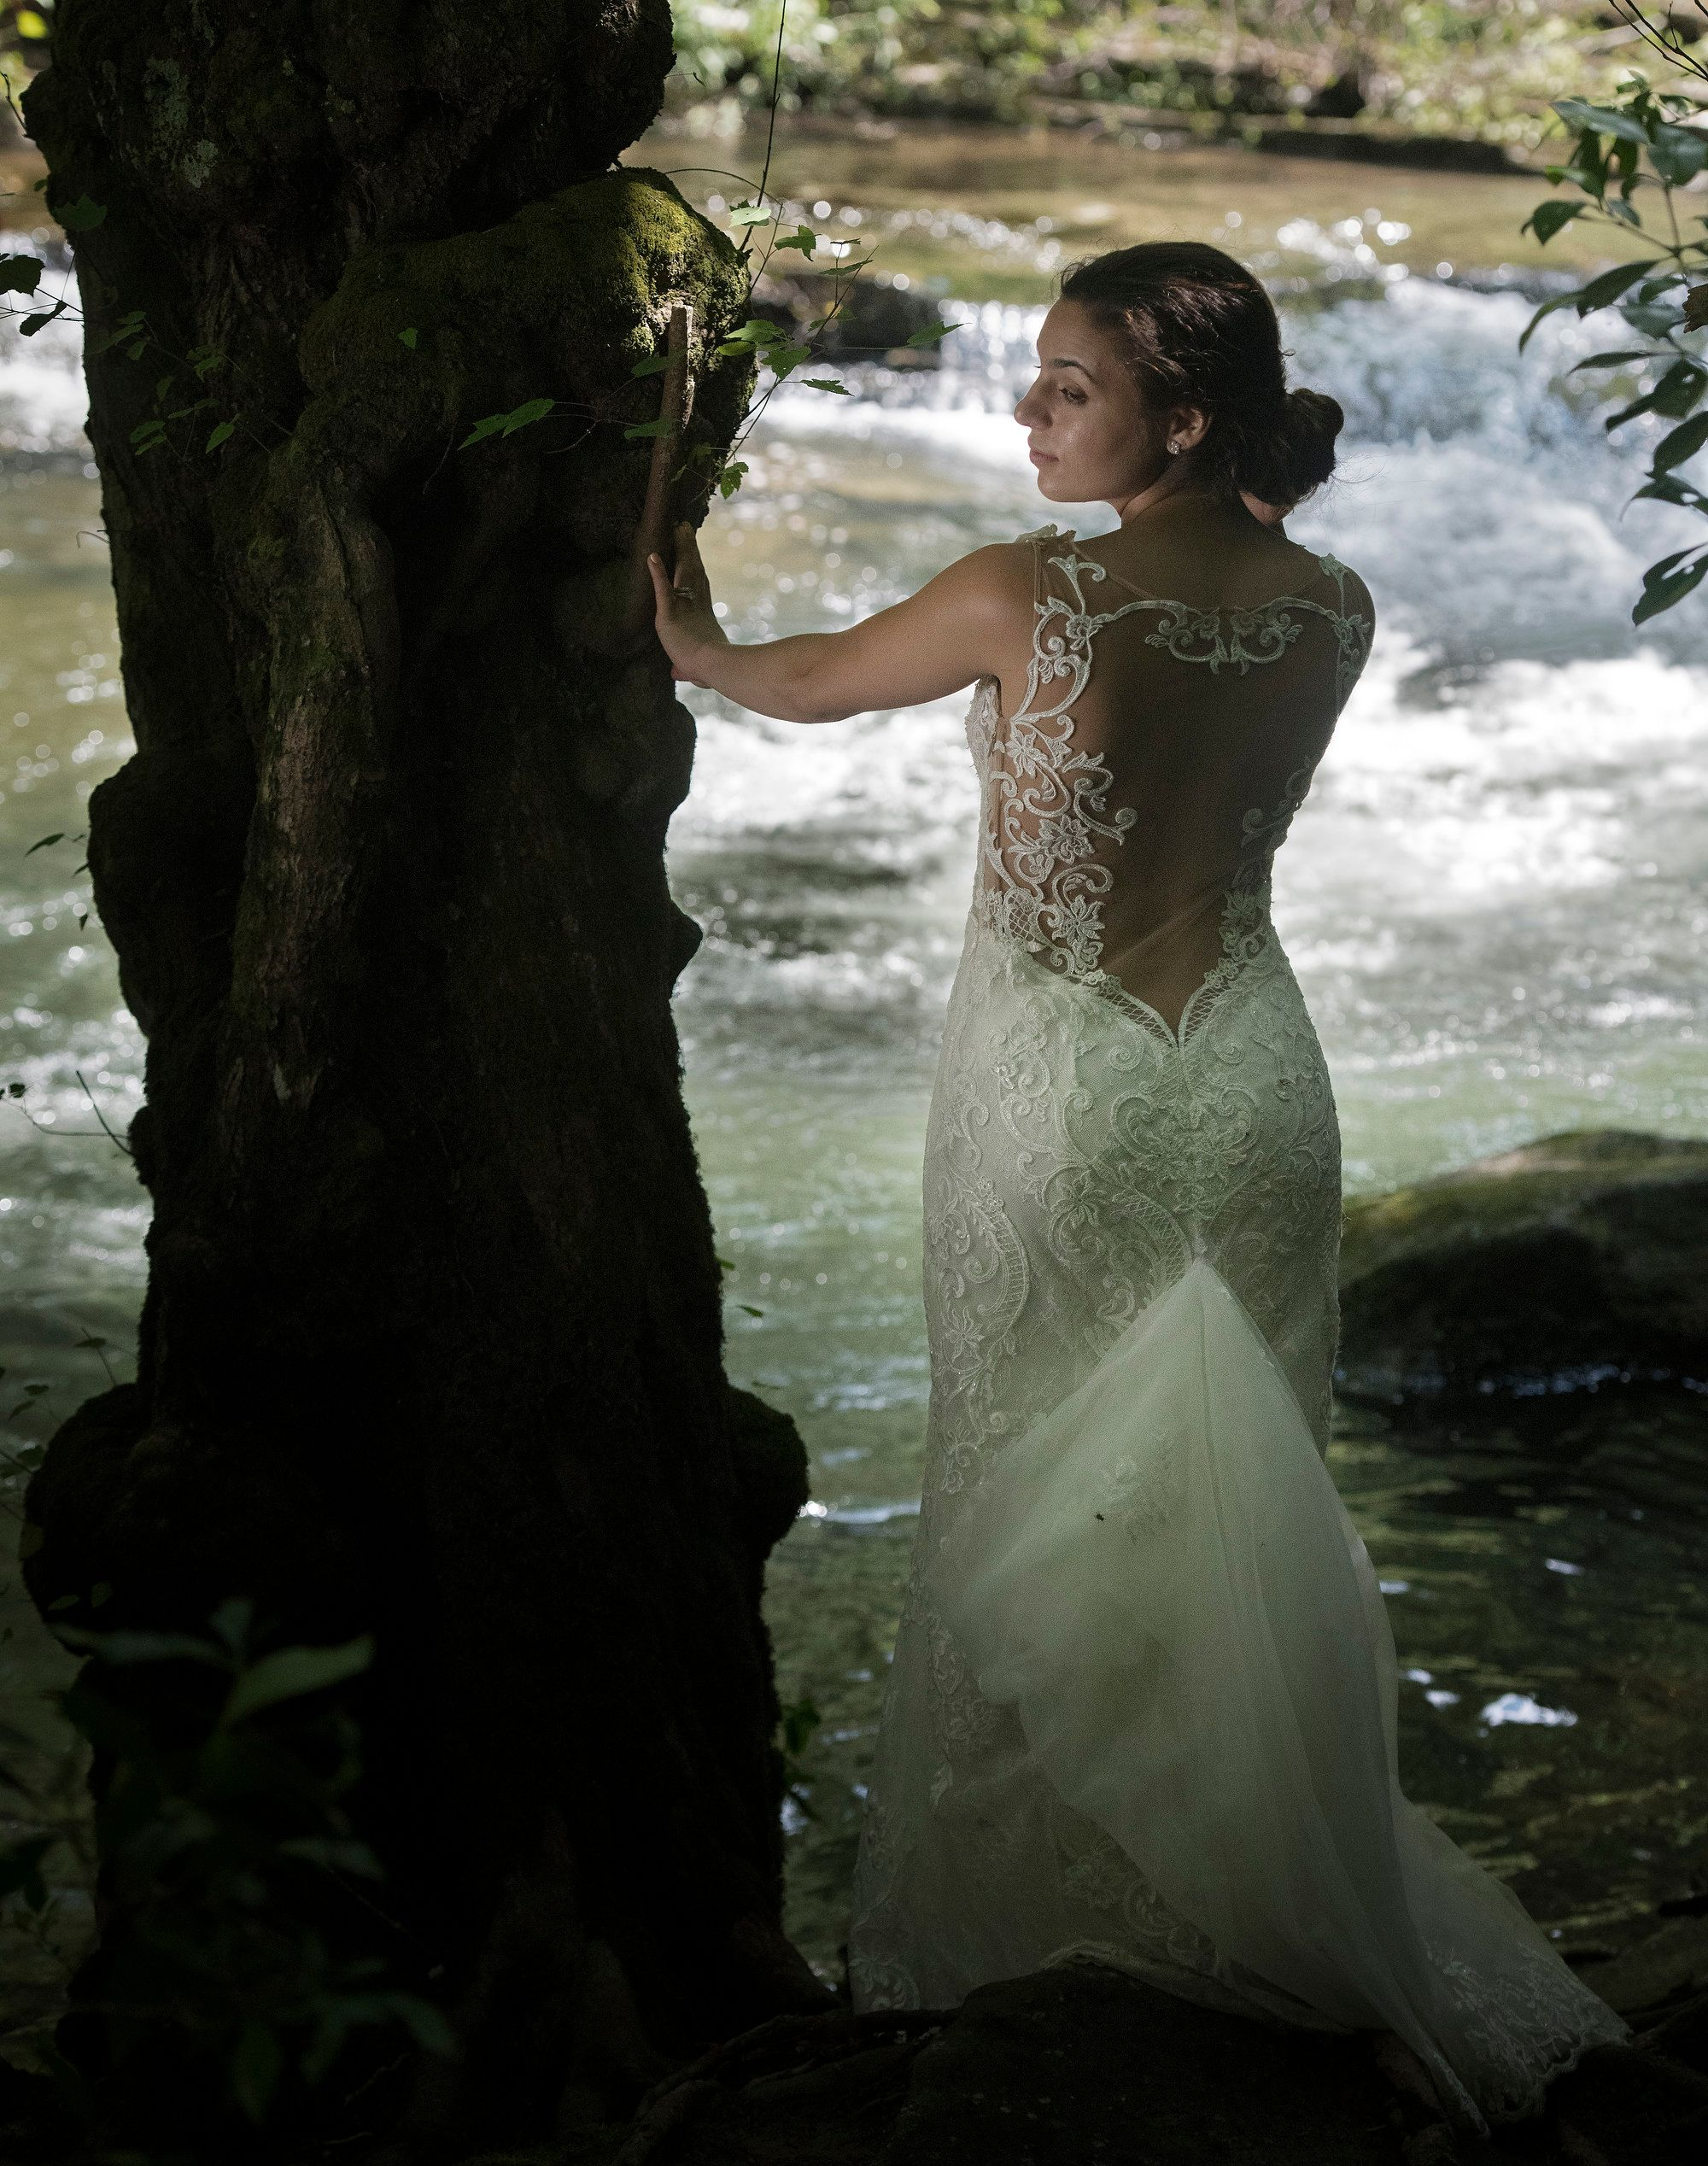 Elegant Bride By The Riverbank